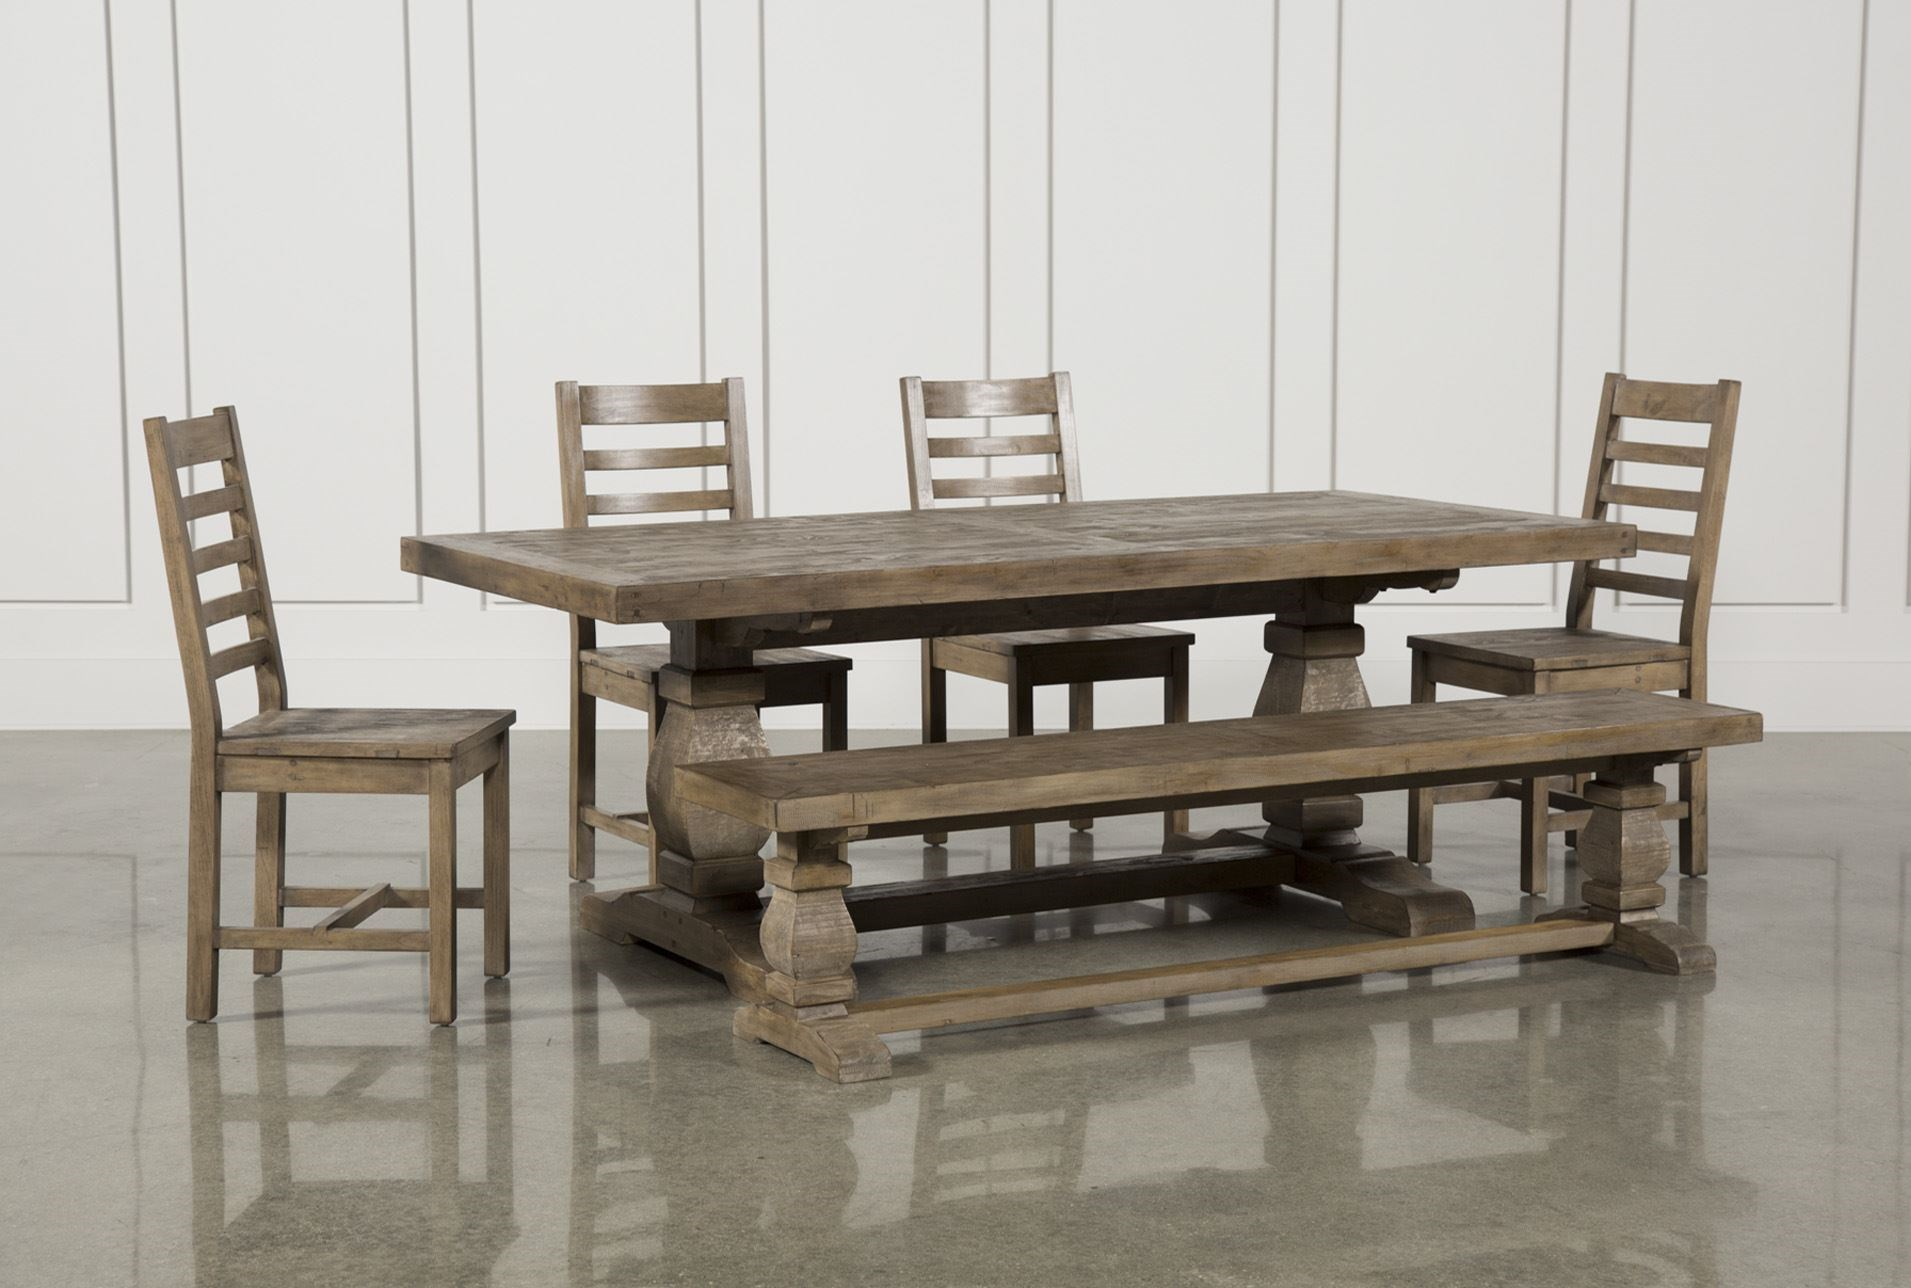 Caden 6 piece rectangle dining set qty 1 has been successfully added to your cart